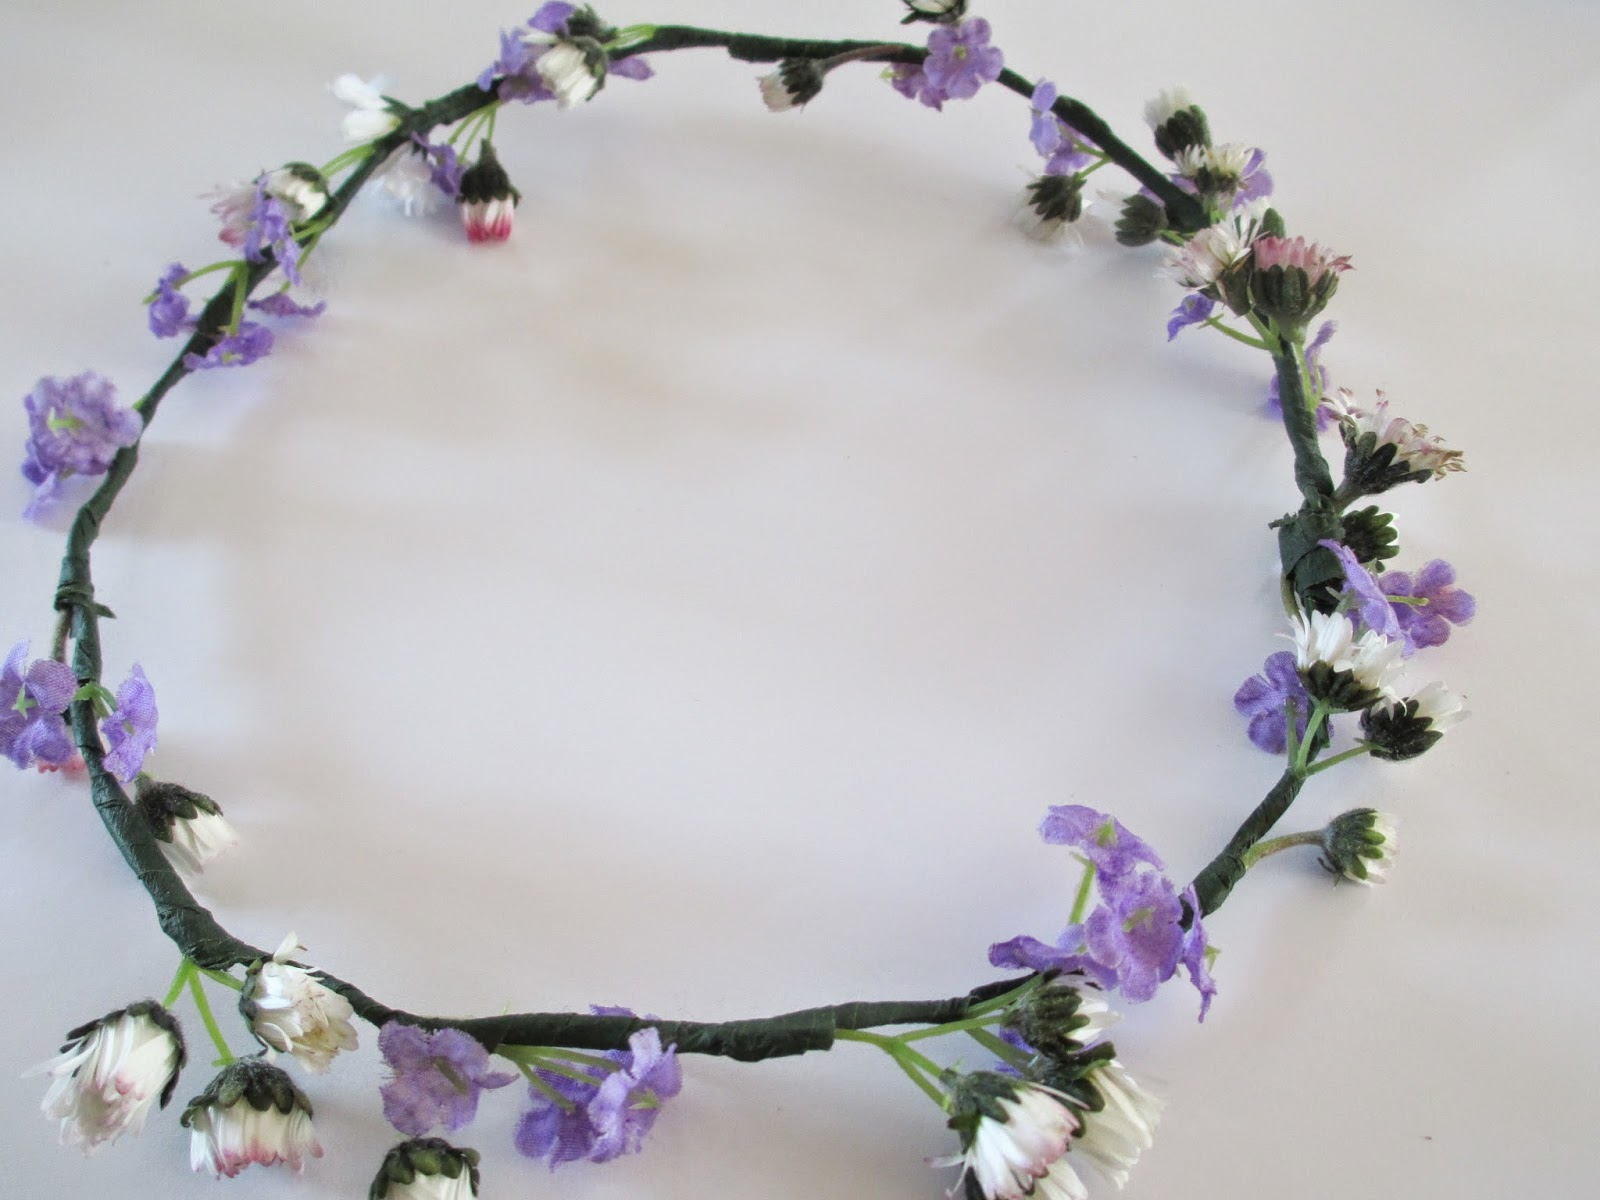 Tins little world diyupcycled flower crown a beautiful flower crown perfect for spring and summer because they are real daisies they look much nicer and daisies are everywhere so very easy to izmirmasajfo